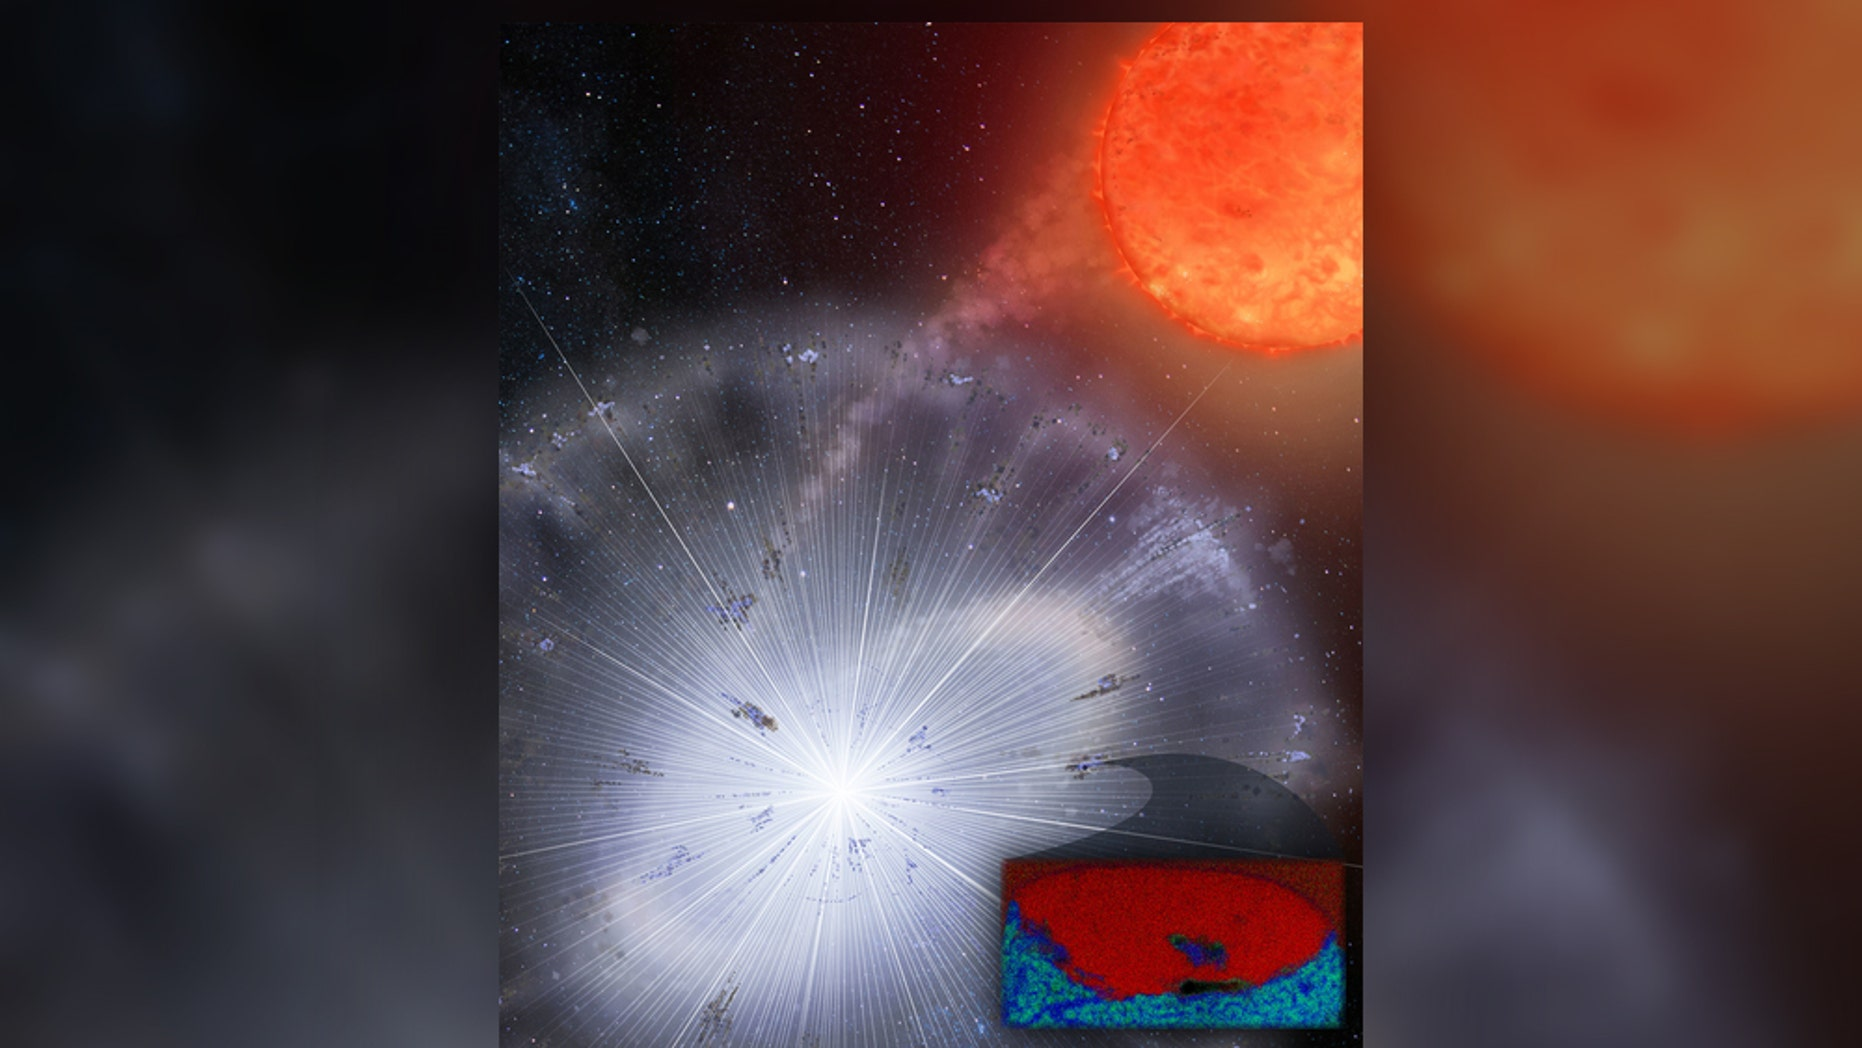 Researchers recently found stardust embedded in a meteorite from Antarctica. This tiny grain made up of carbon-rich material (red) and oxygen-rich material (blue) likely formed in a nova explosion.